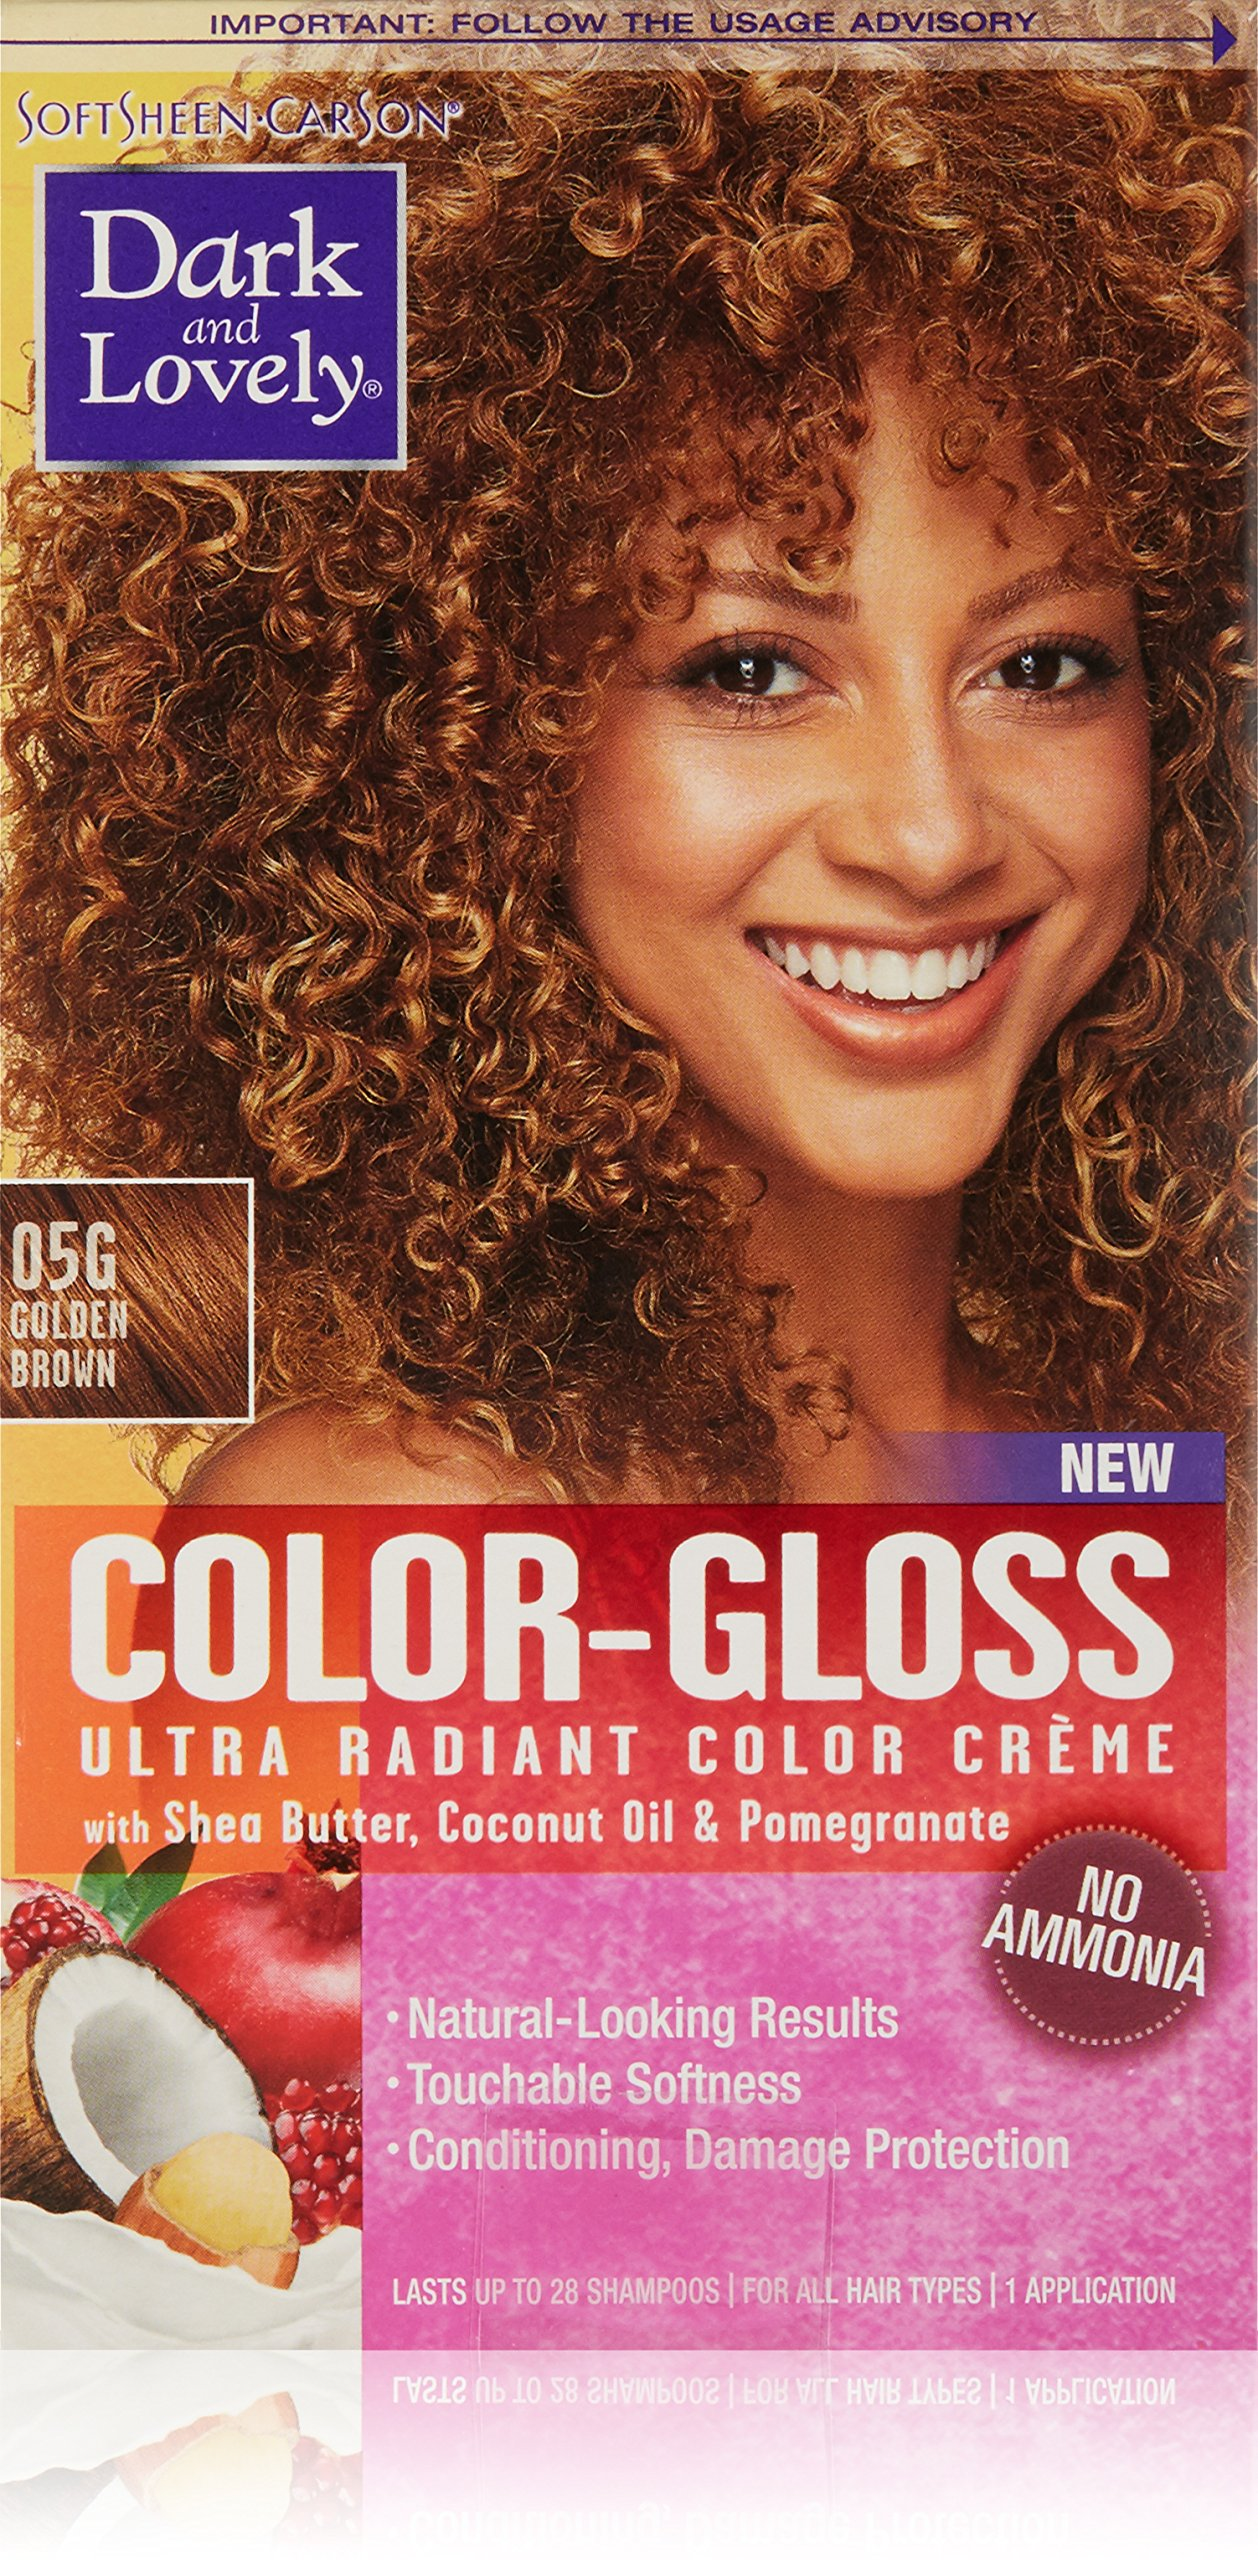 Amazon Softsheen Carson Dark And Lovely Color Gloss Ultra